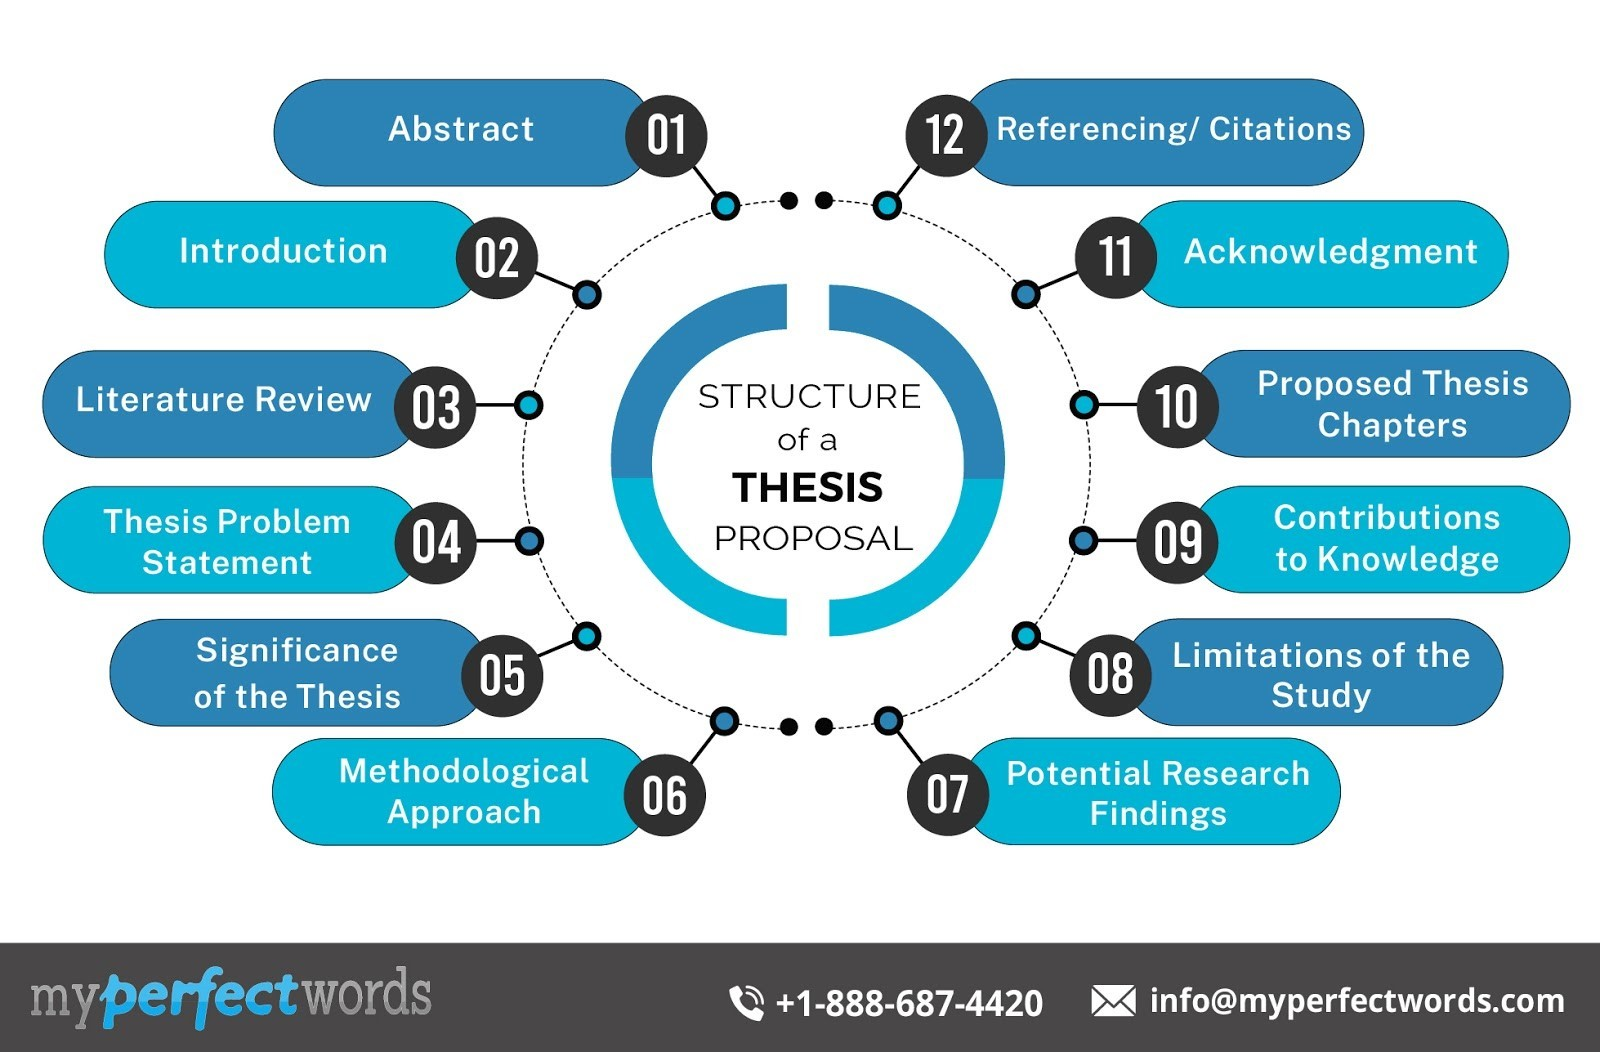 Structure of a Thesis Proposal